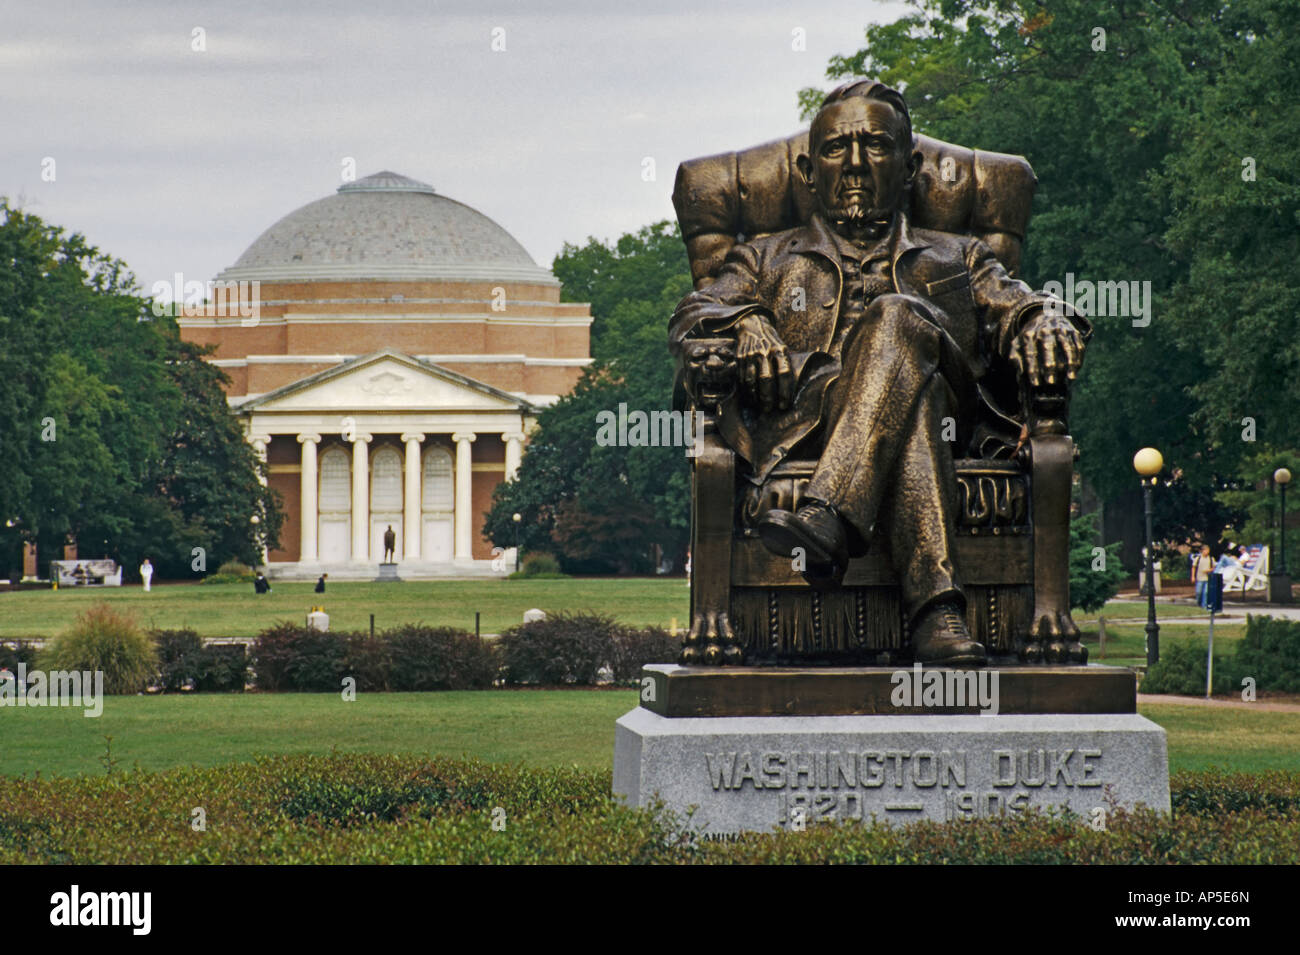 Washington Duke statue Duke University Durham North Carolina USA - Stock Image